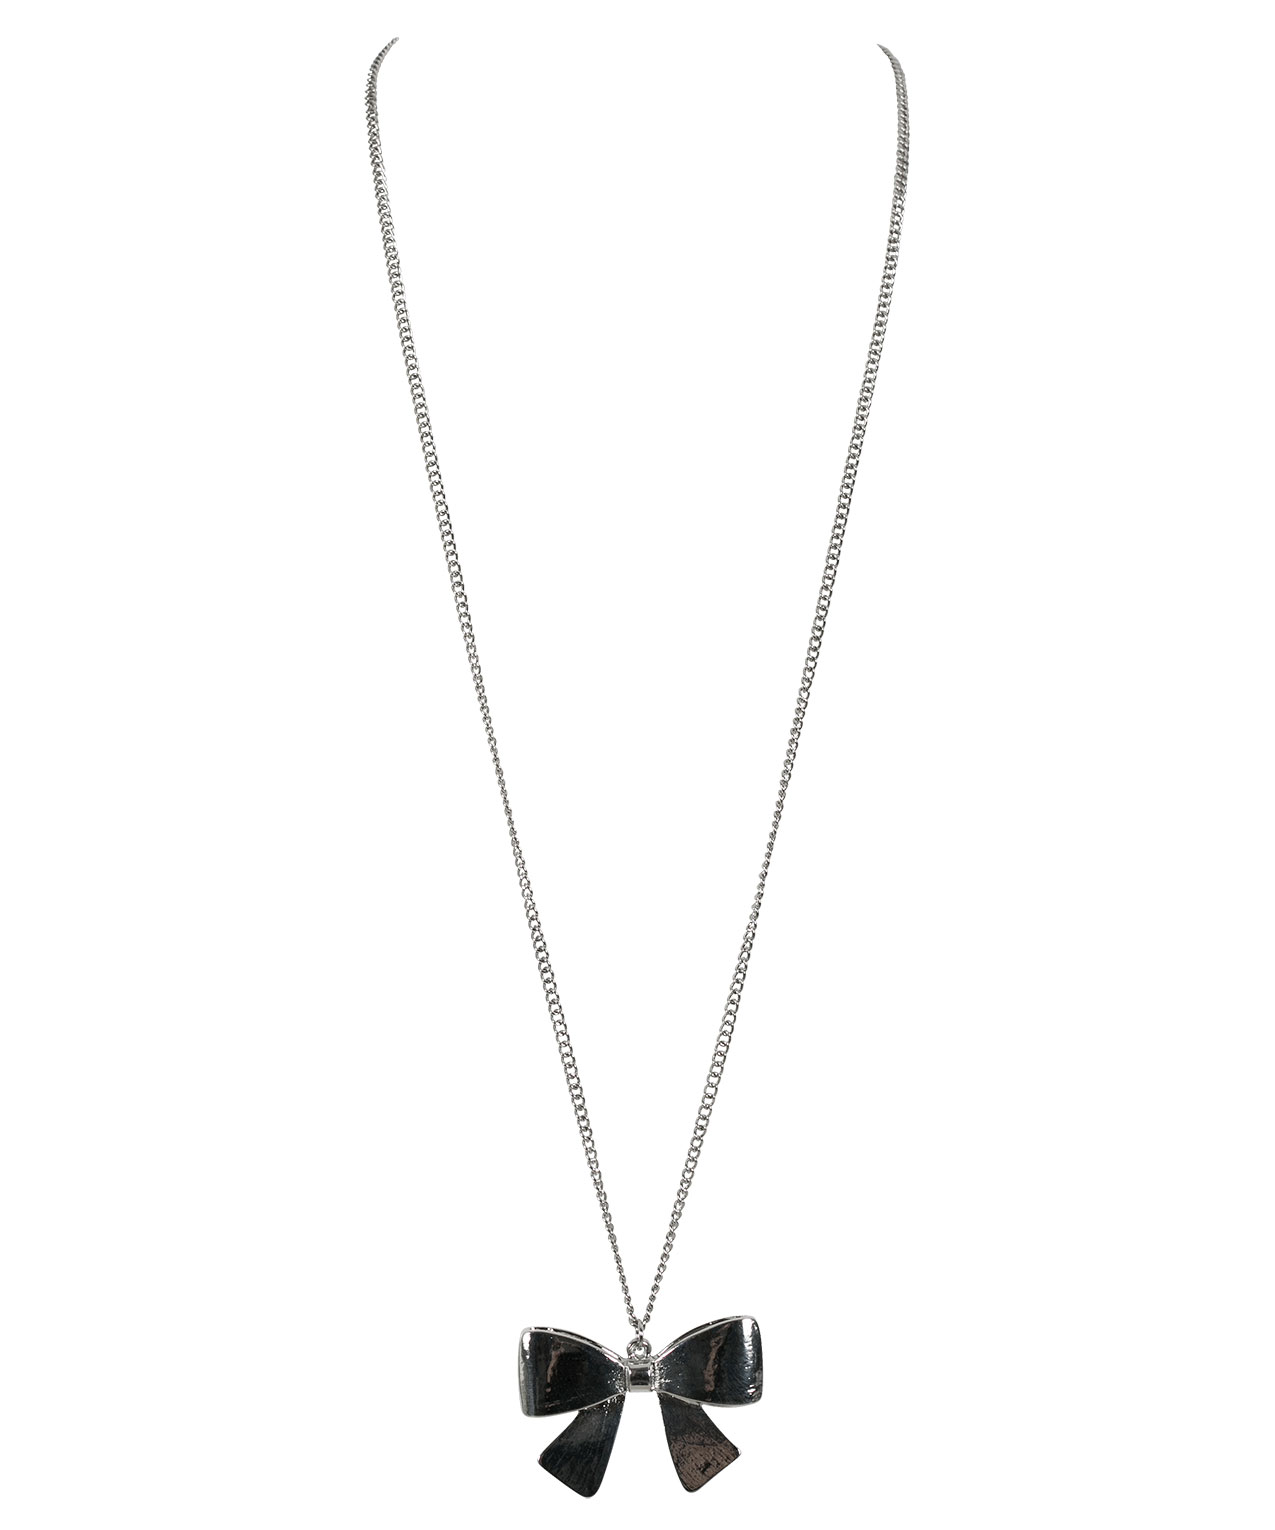 Bow pendant necklace rickis bow pendant necklace rhodium hi res aloadofball Images